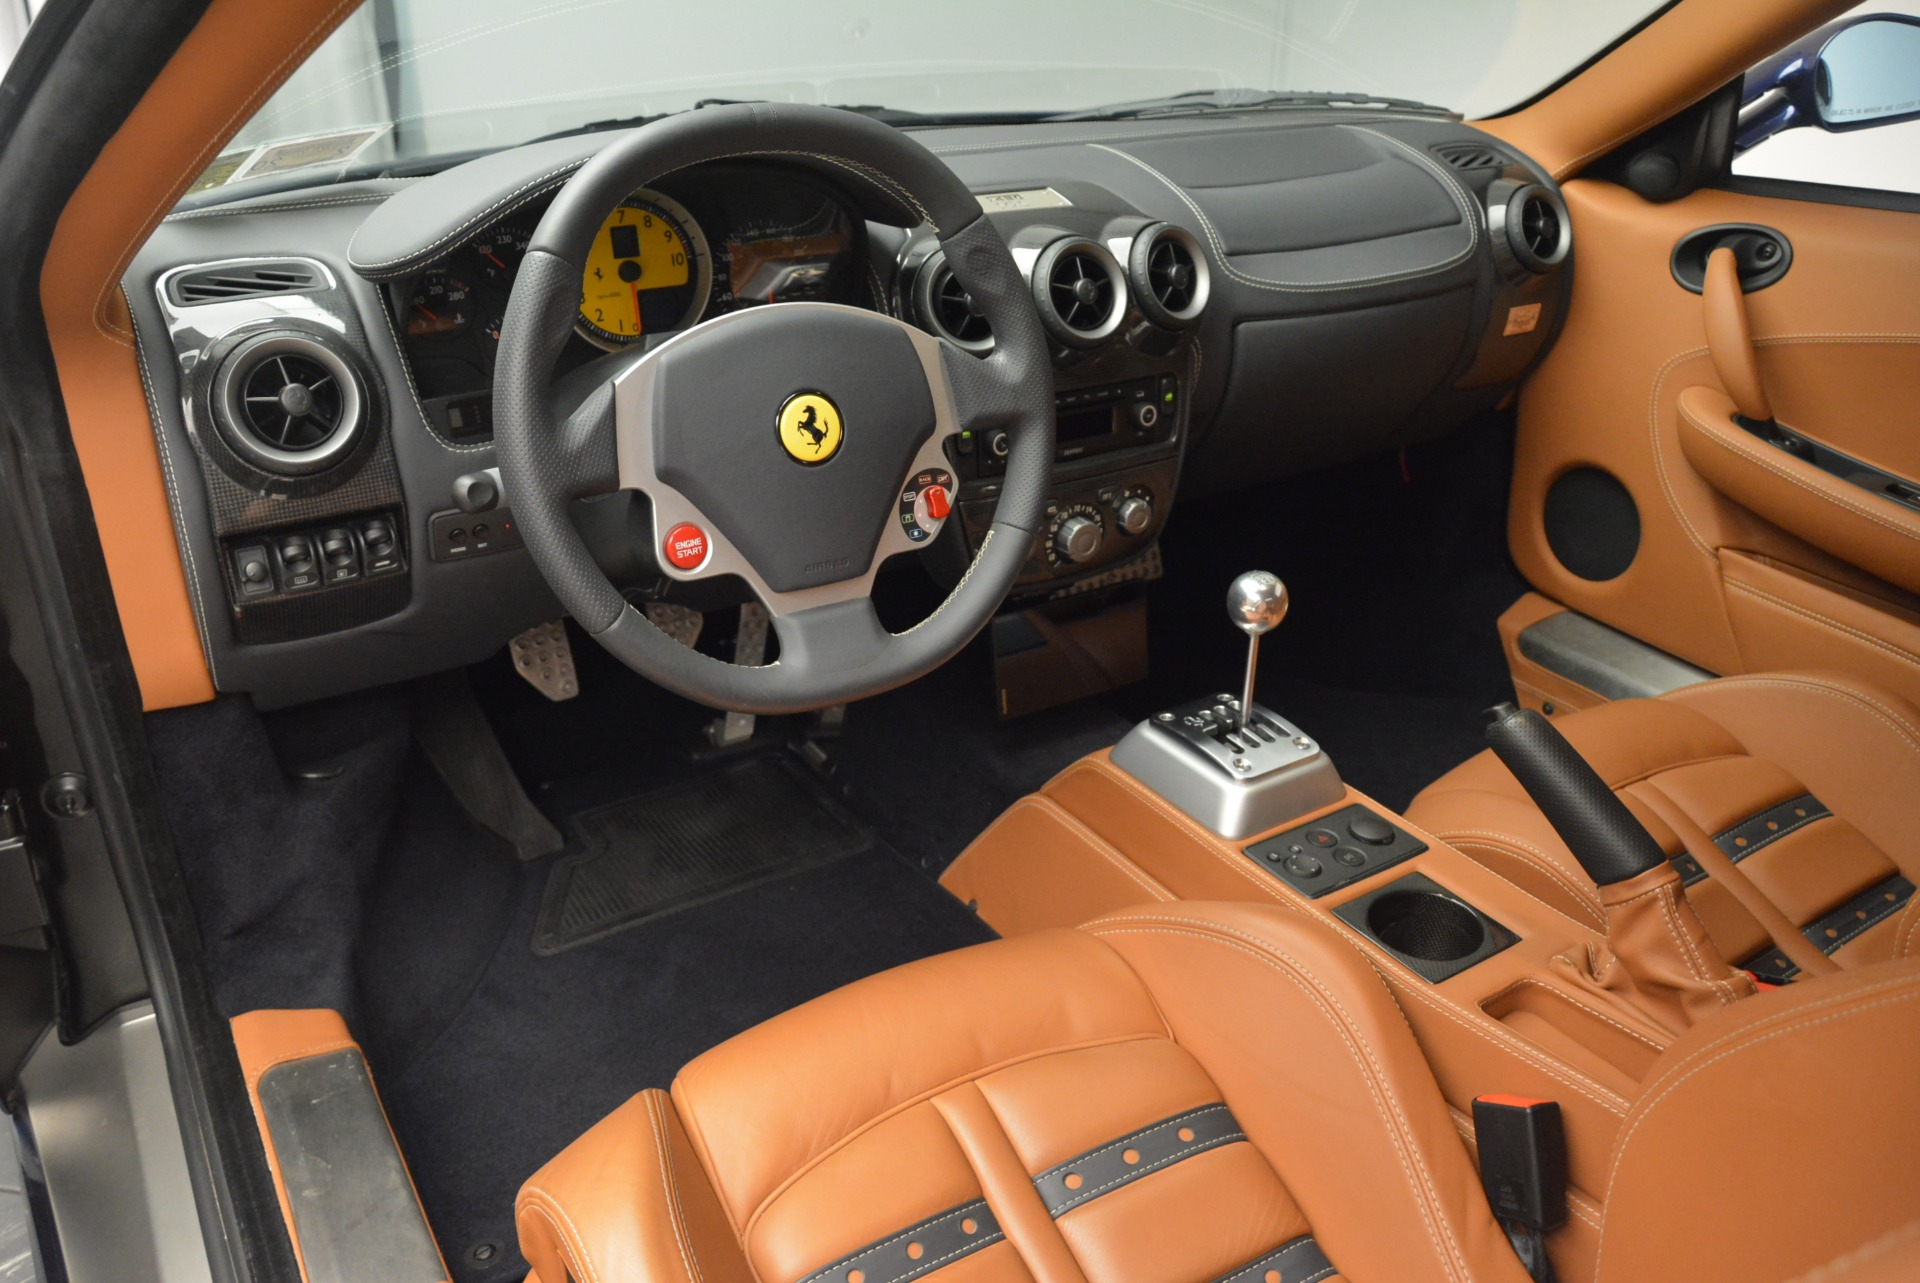 Used 2009 Ferrari F430 6-Speed Manual For Sale In Greenwich, CT 2466_p14